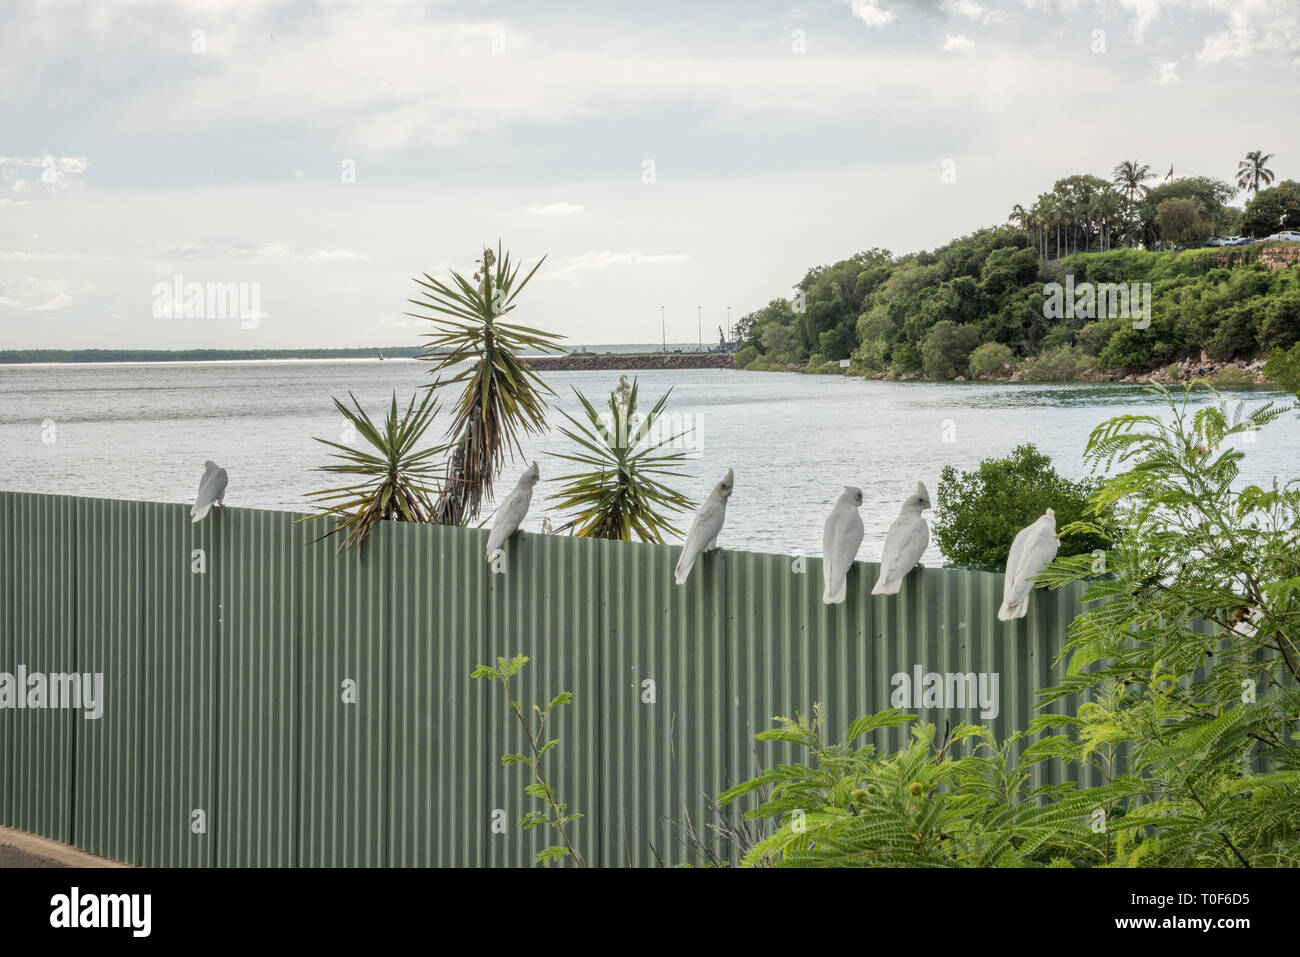 Little corella parrots perched on Timor Sea waterfront fence in tropical Darwin, Australia - Stock Image